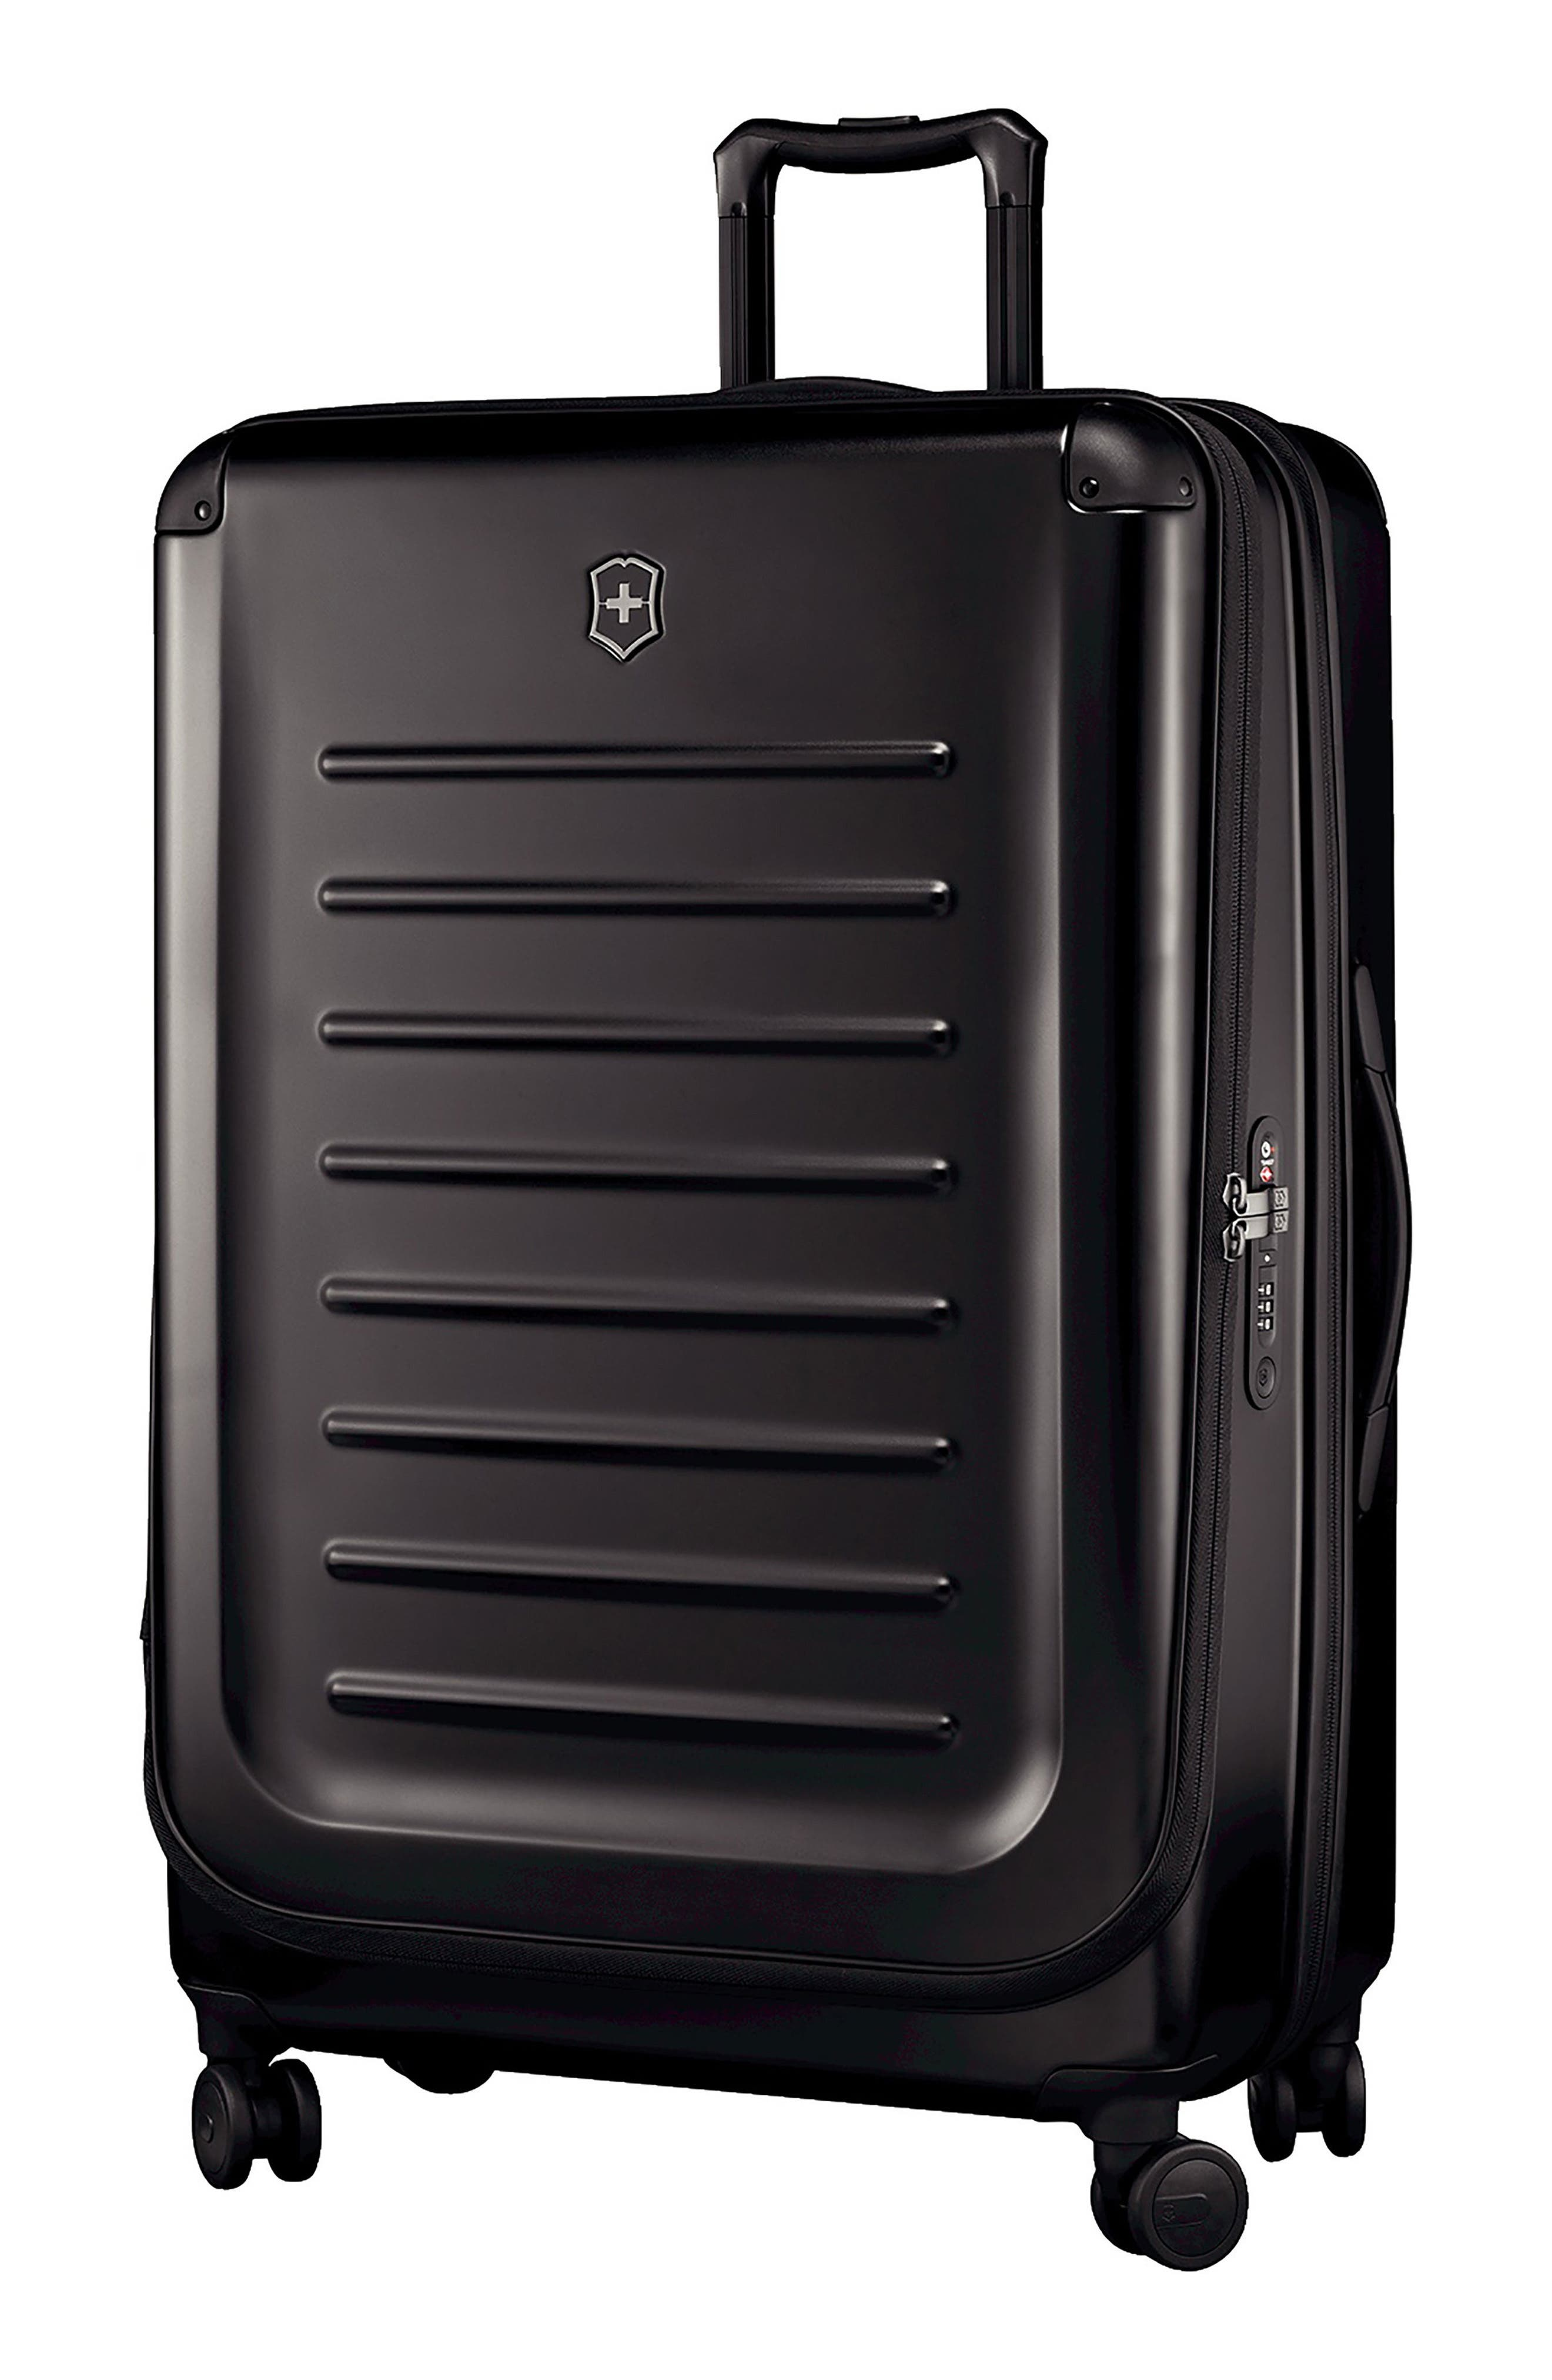 Spectra 2.0 32 Inch Hard Sided Rolling Travel Suitcase,                         Main,                         color,